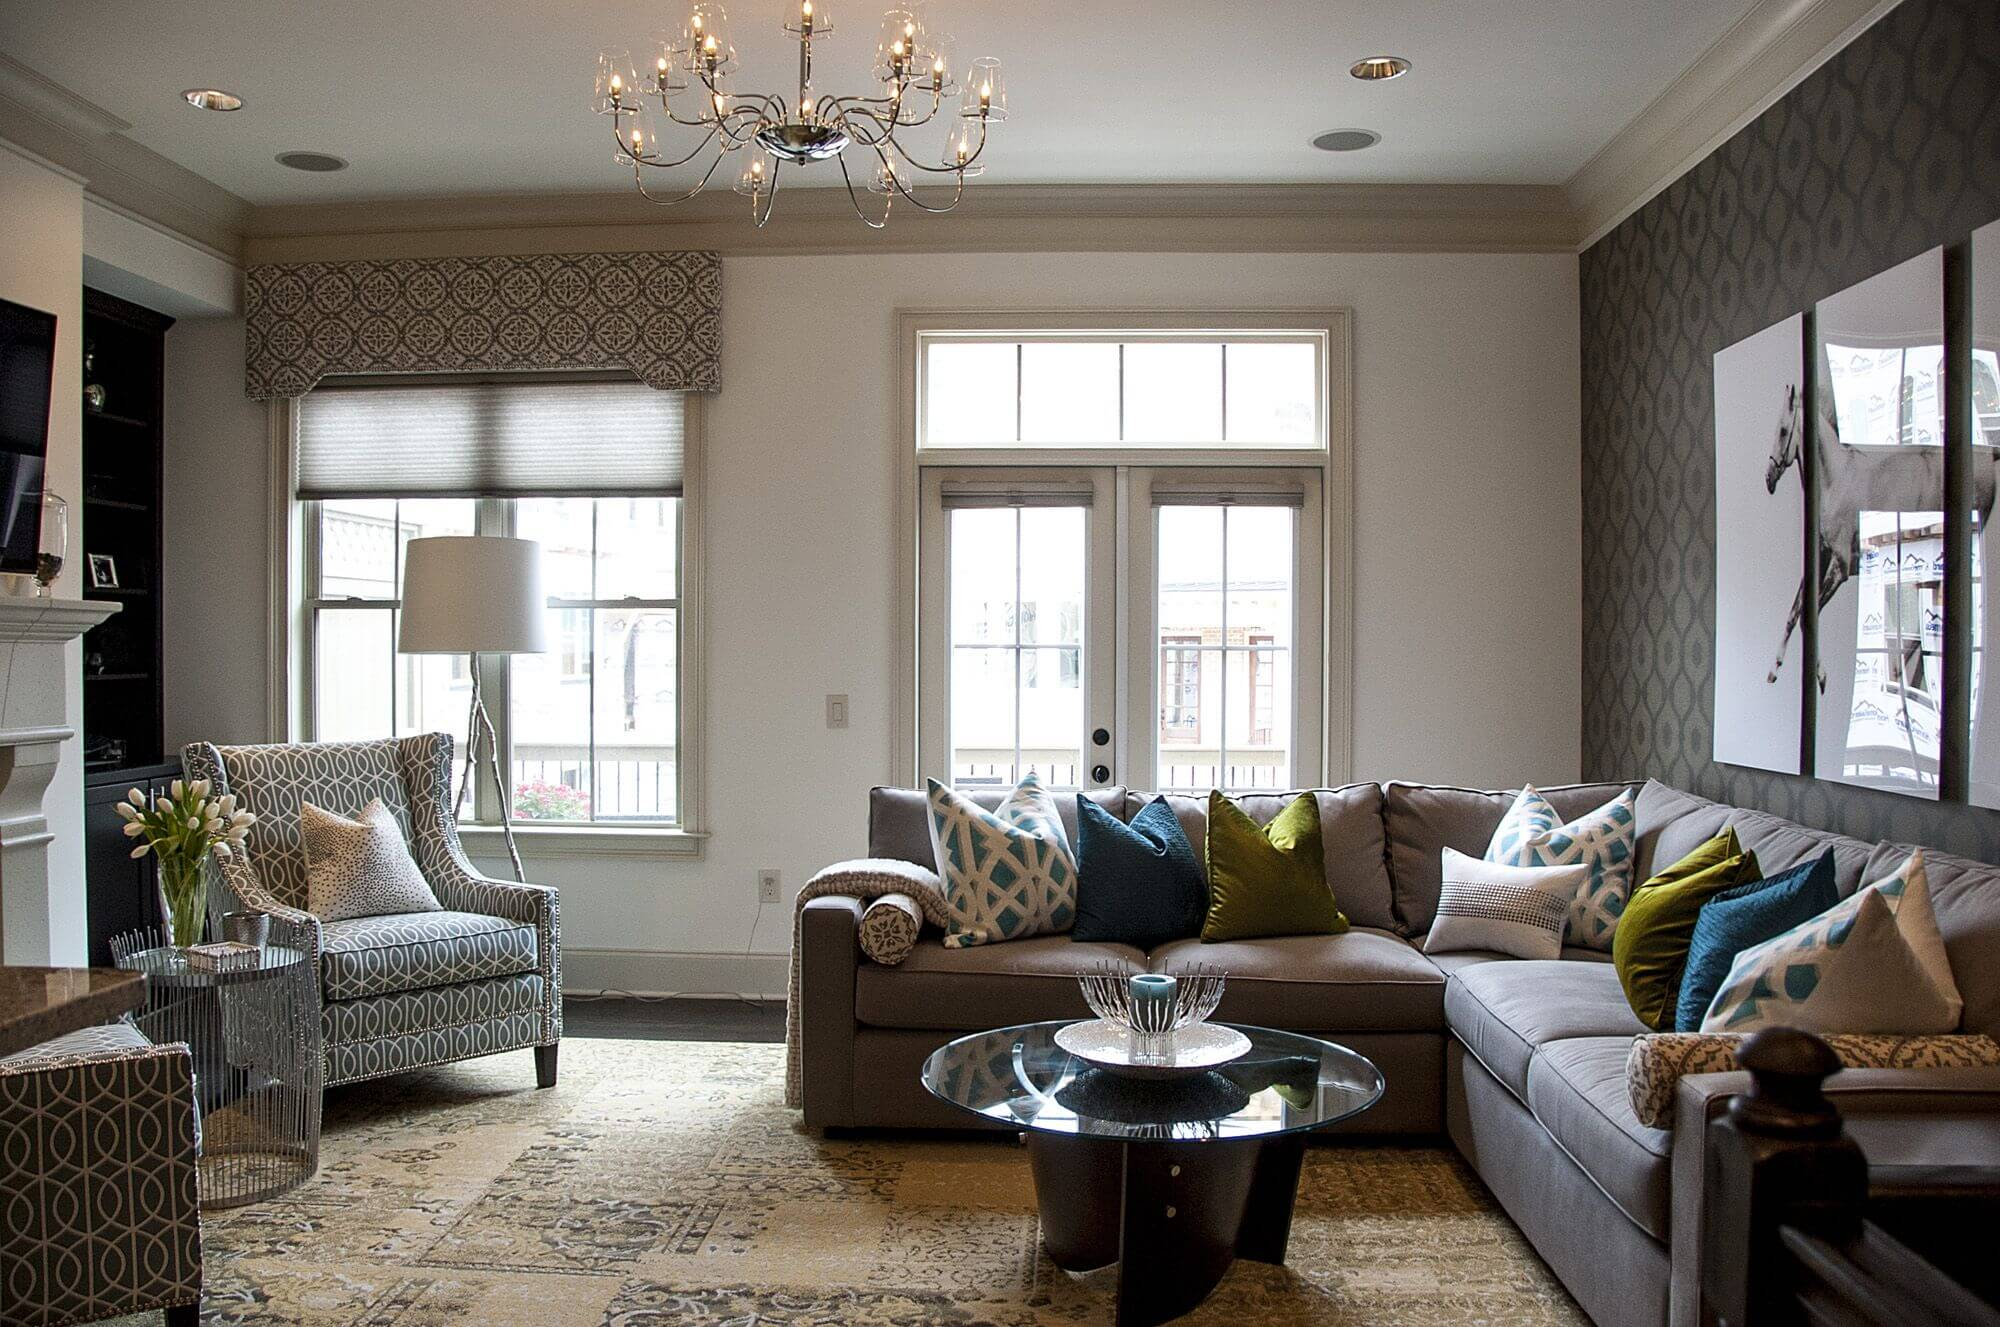 Cozy living room furniture set here includes brown cushion back sectional with variety of patterned color